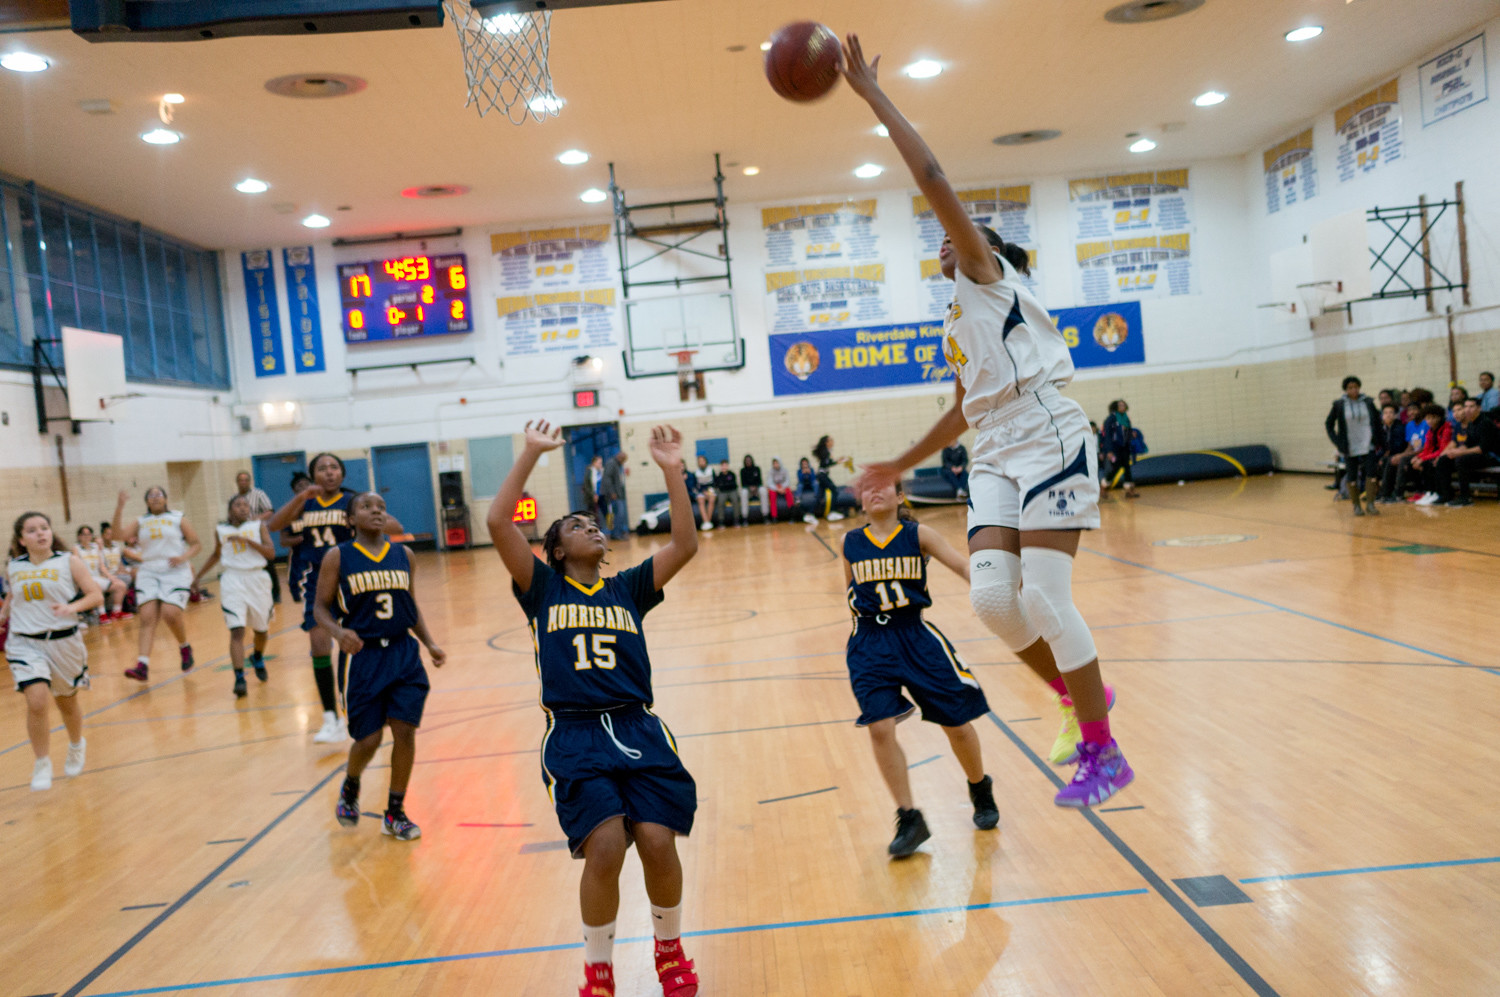 RKA's Shadai Plowden cruises in for an easy bucket in the Lady Tigers' lopsided victory over Morrisania last week.